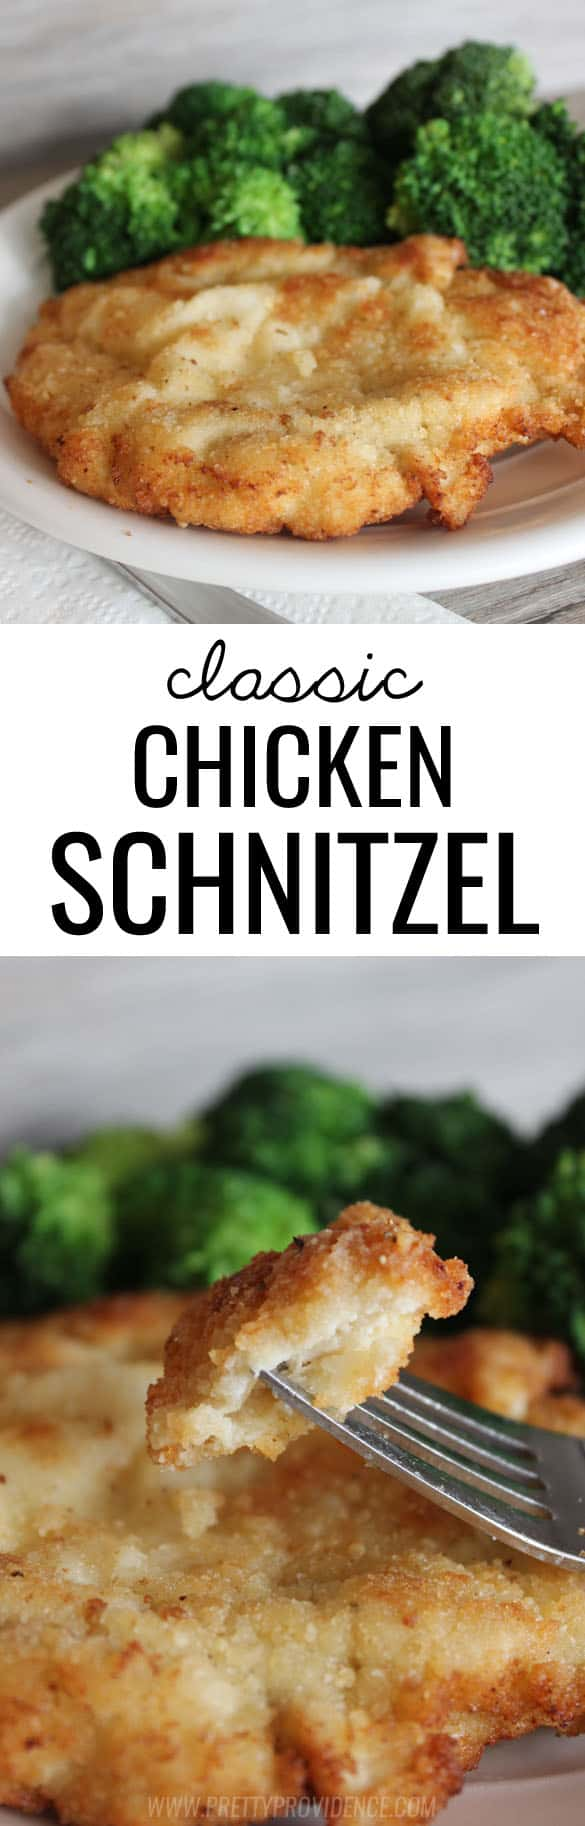 This classic chicken schnitzel cannot be beat! Such a yummy dinner option the whole family will love!